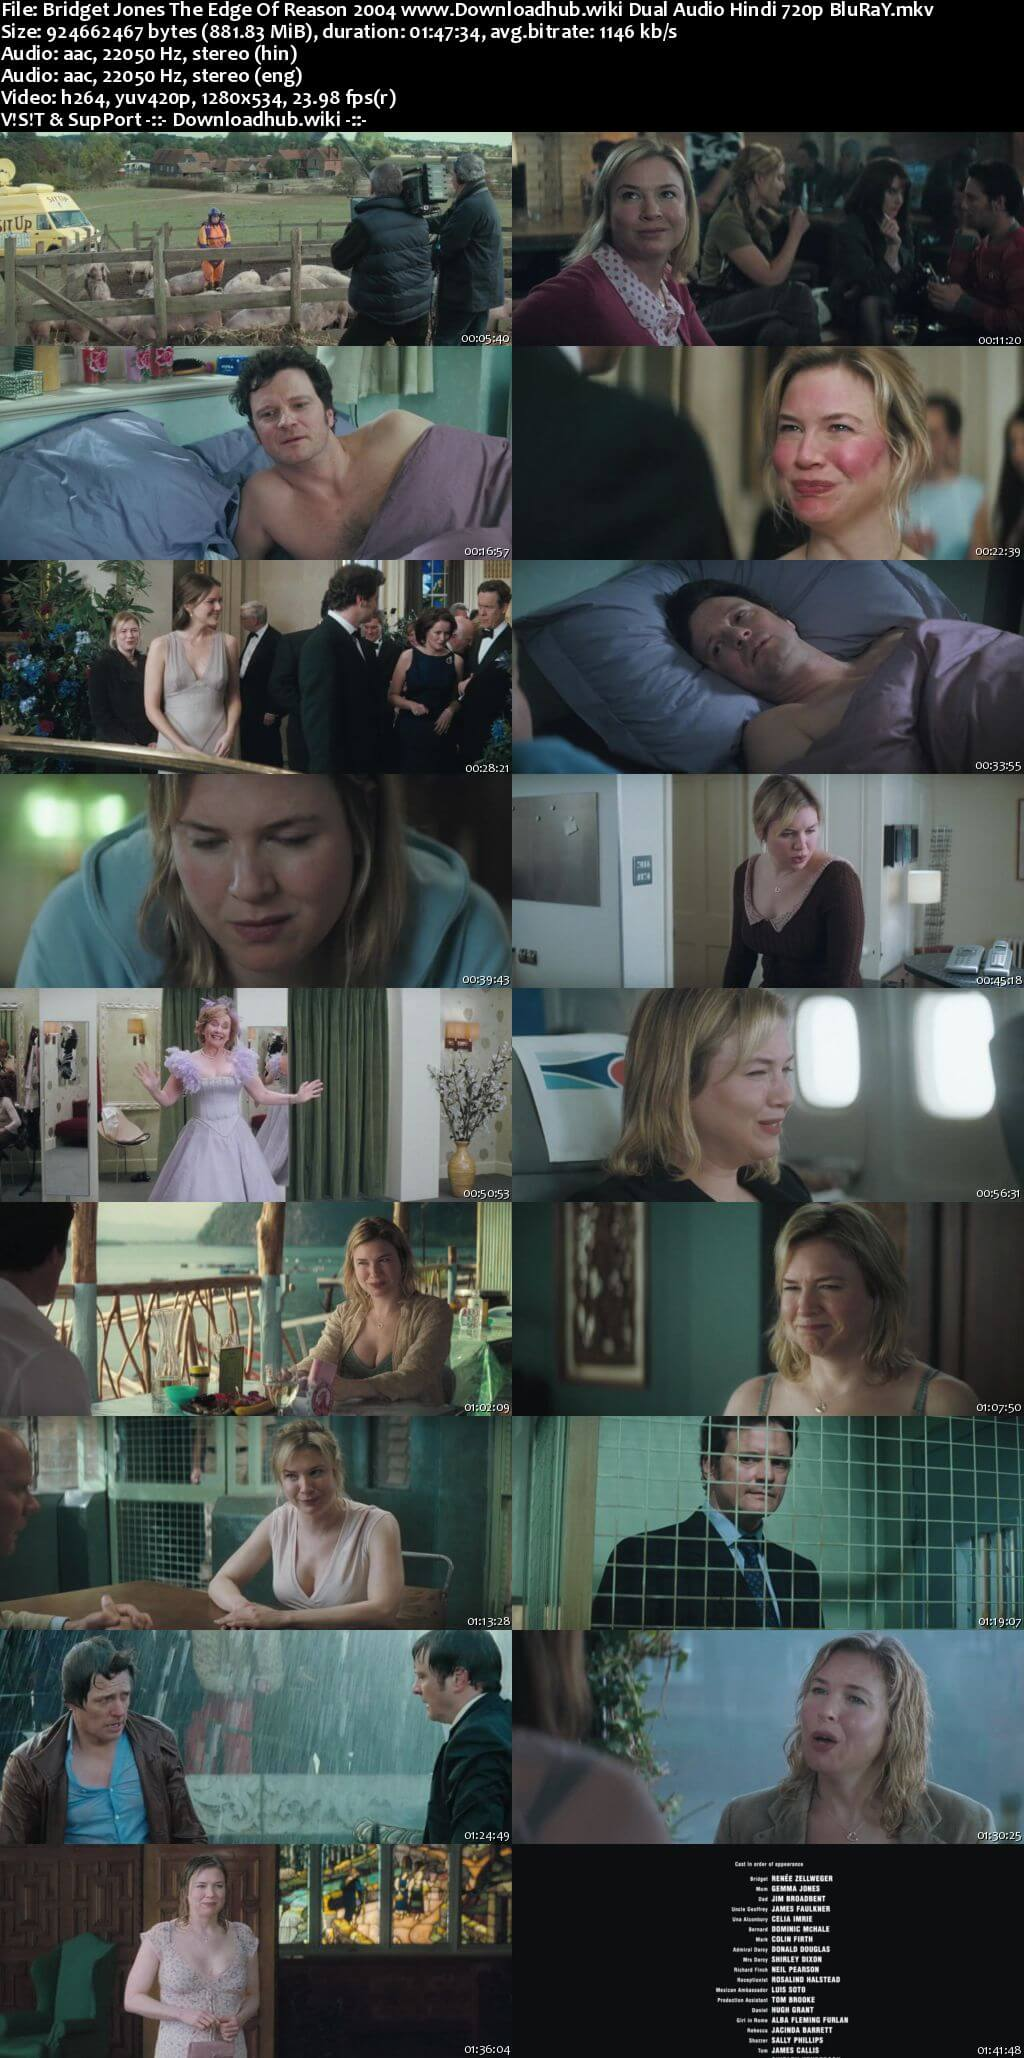 Bridget Jones The Edge of Reason 2004 Hindi Dual Audio 720p BluRay ESubs